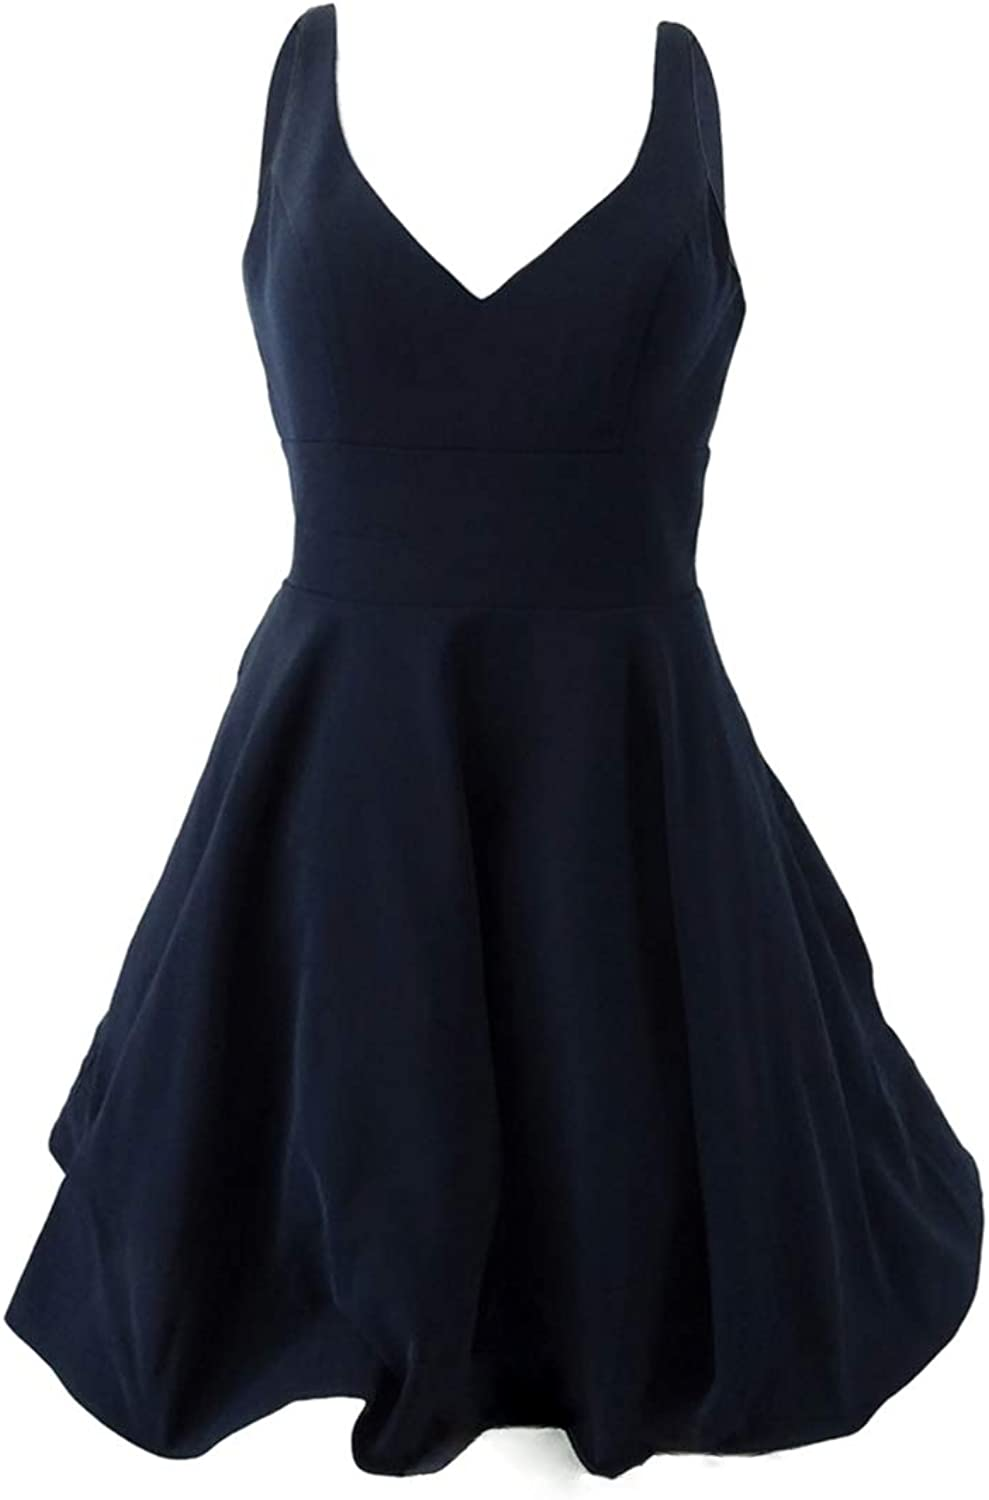 Xscape Womens DoubleV Fit & Flare Party Dress